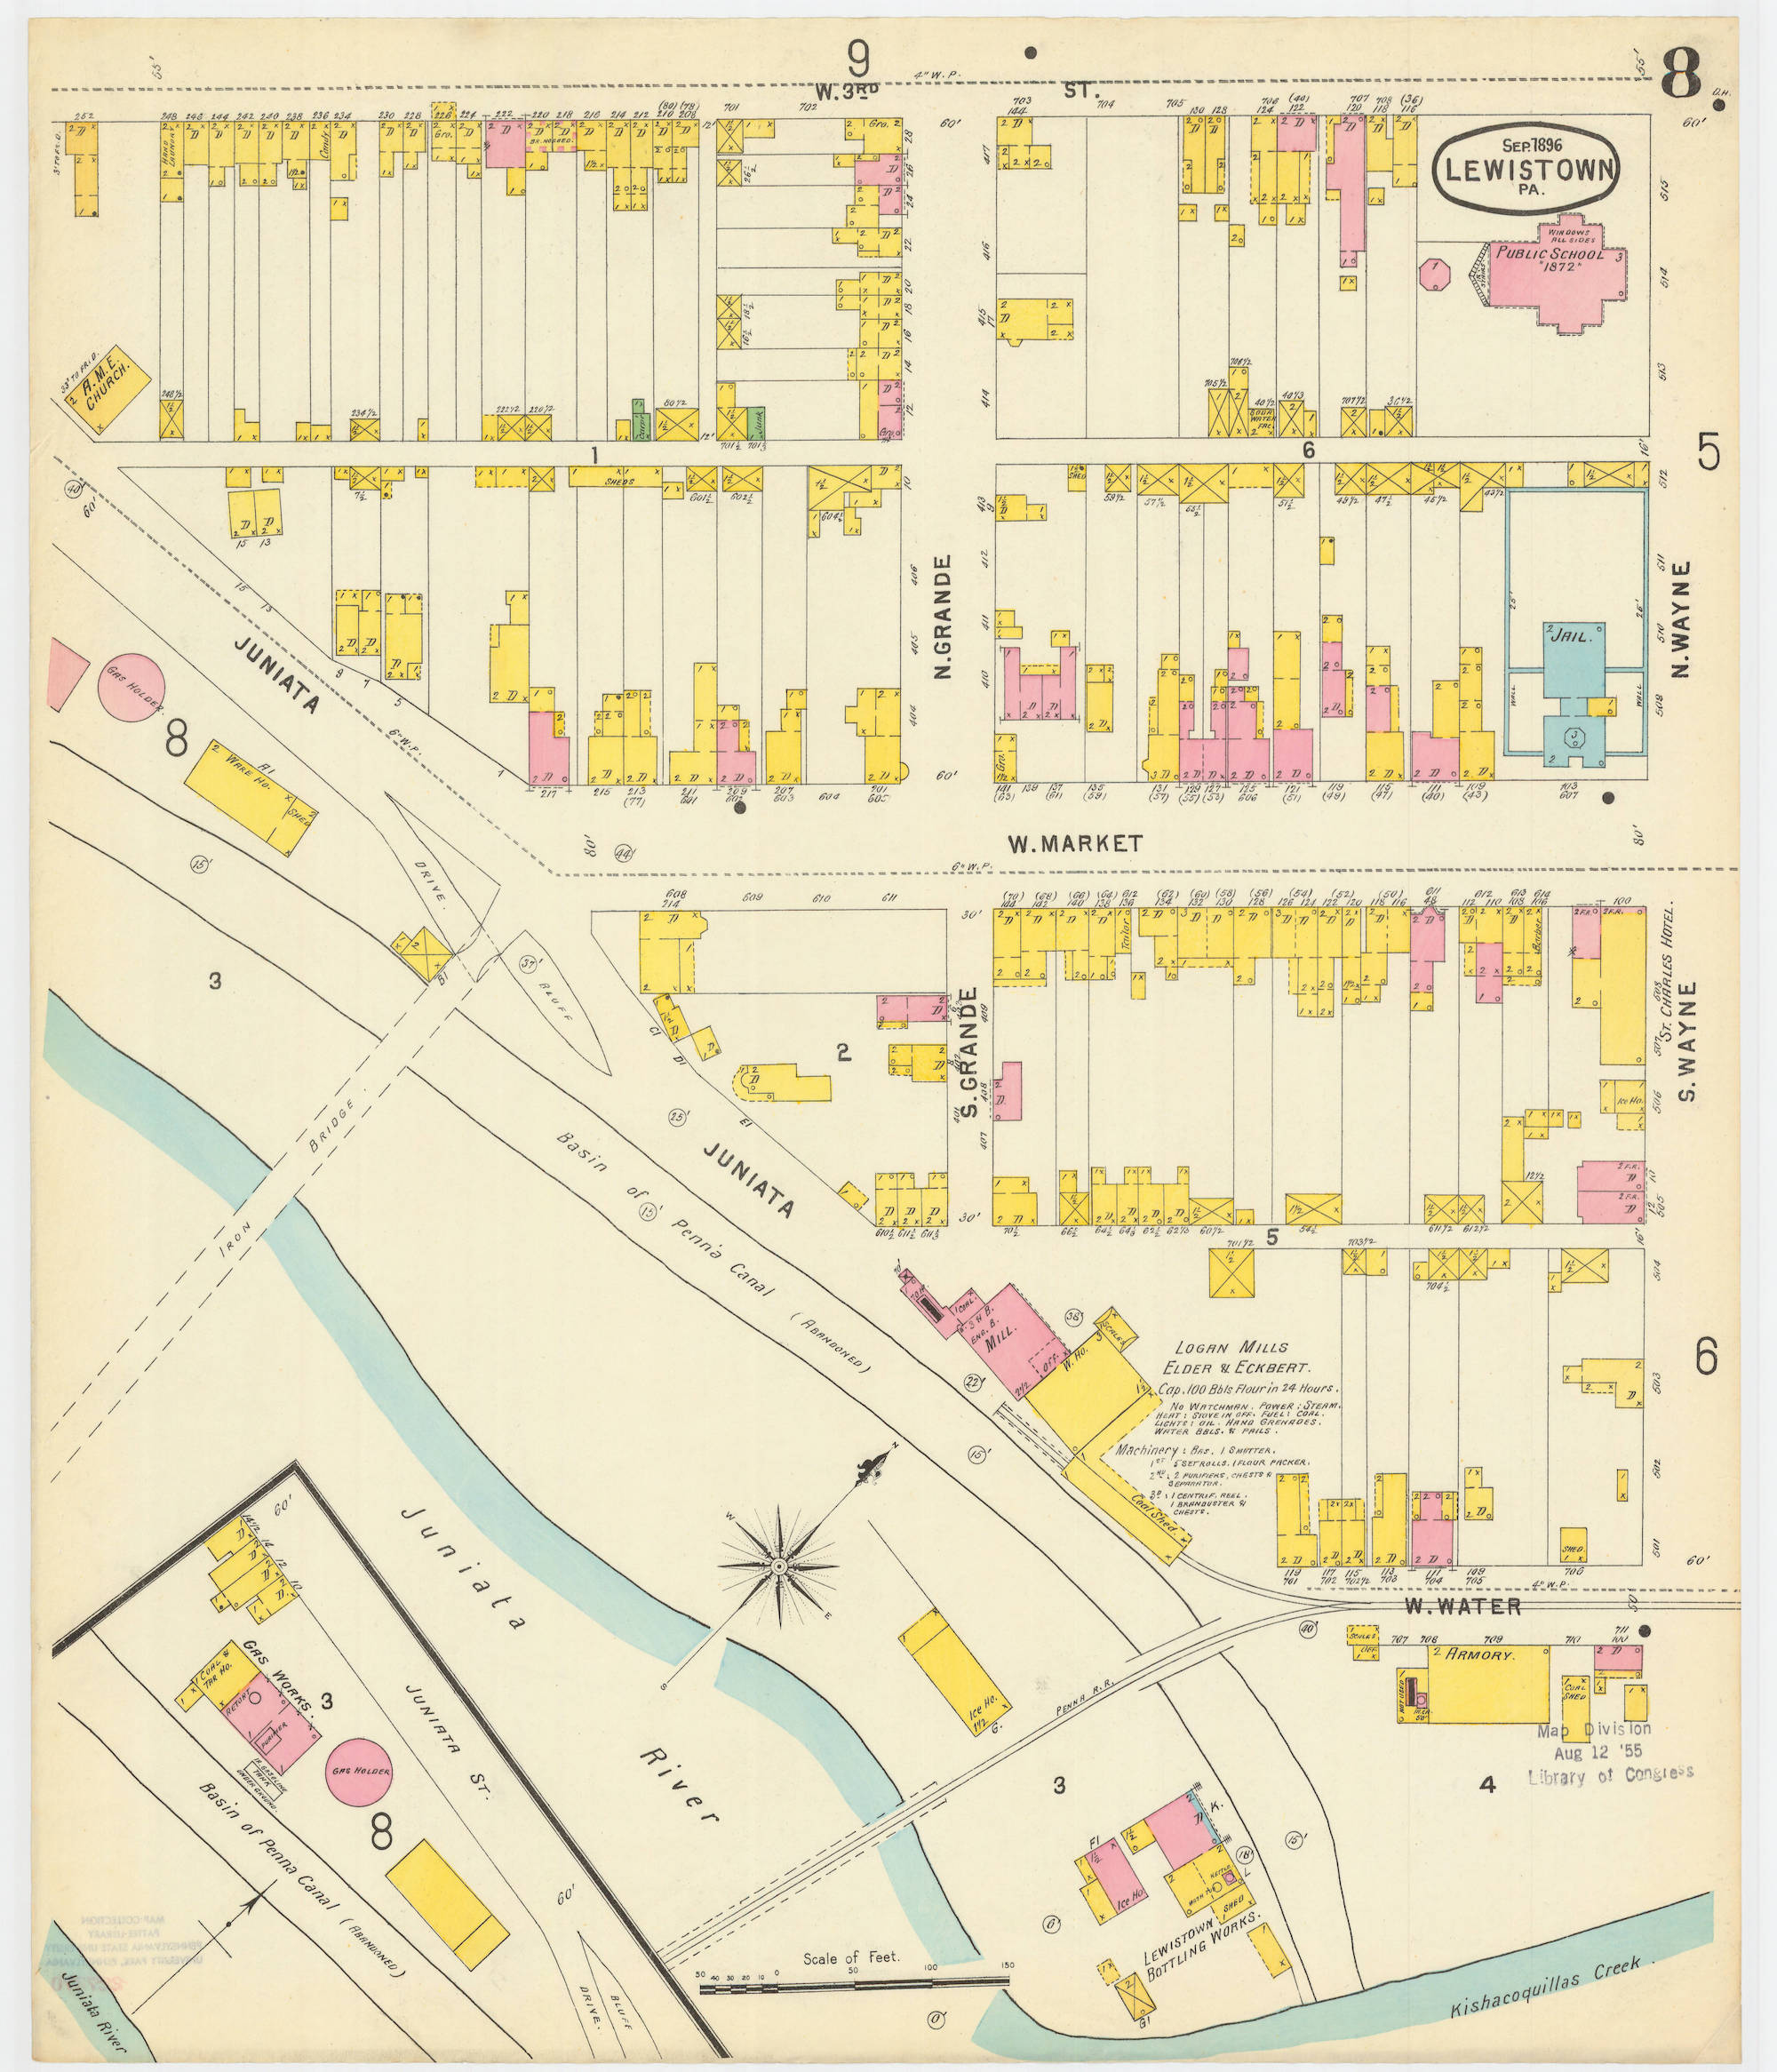 Lewistown1896 sheet08